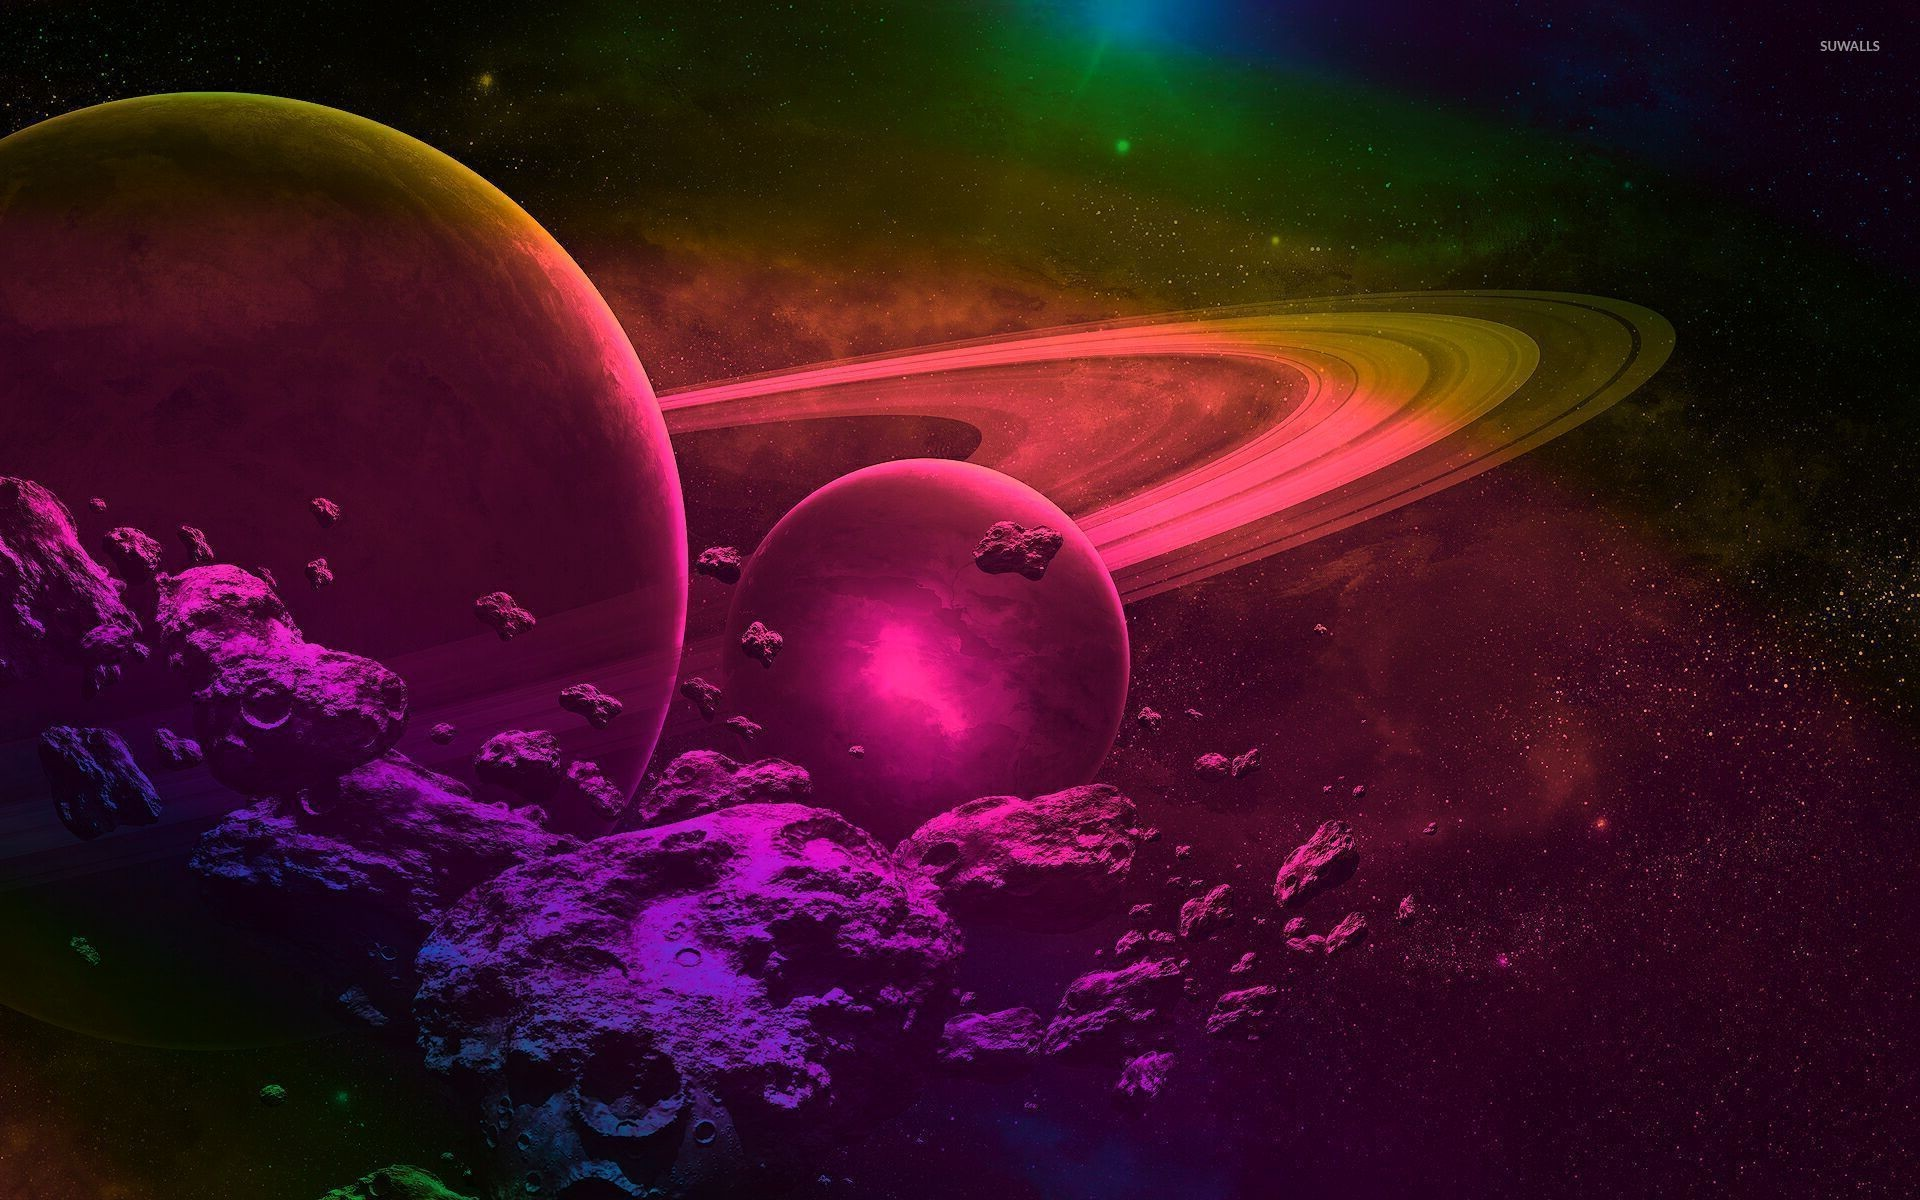 Purple and blue galaxy wallpaper 71 images - Purple space wallpaper ...